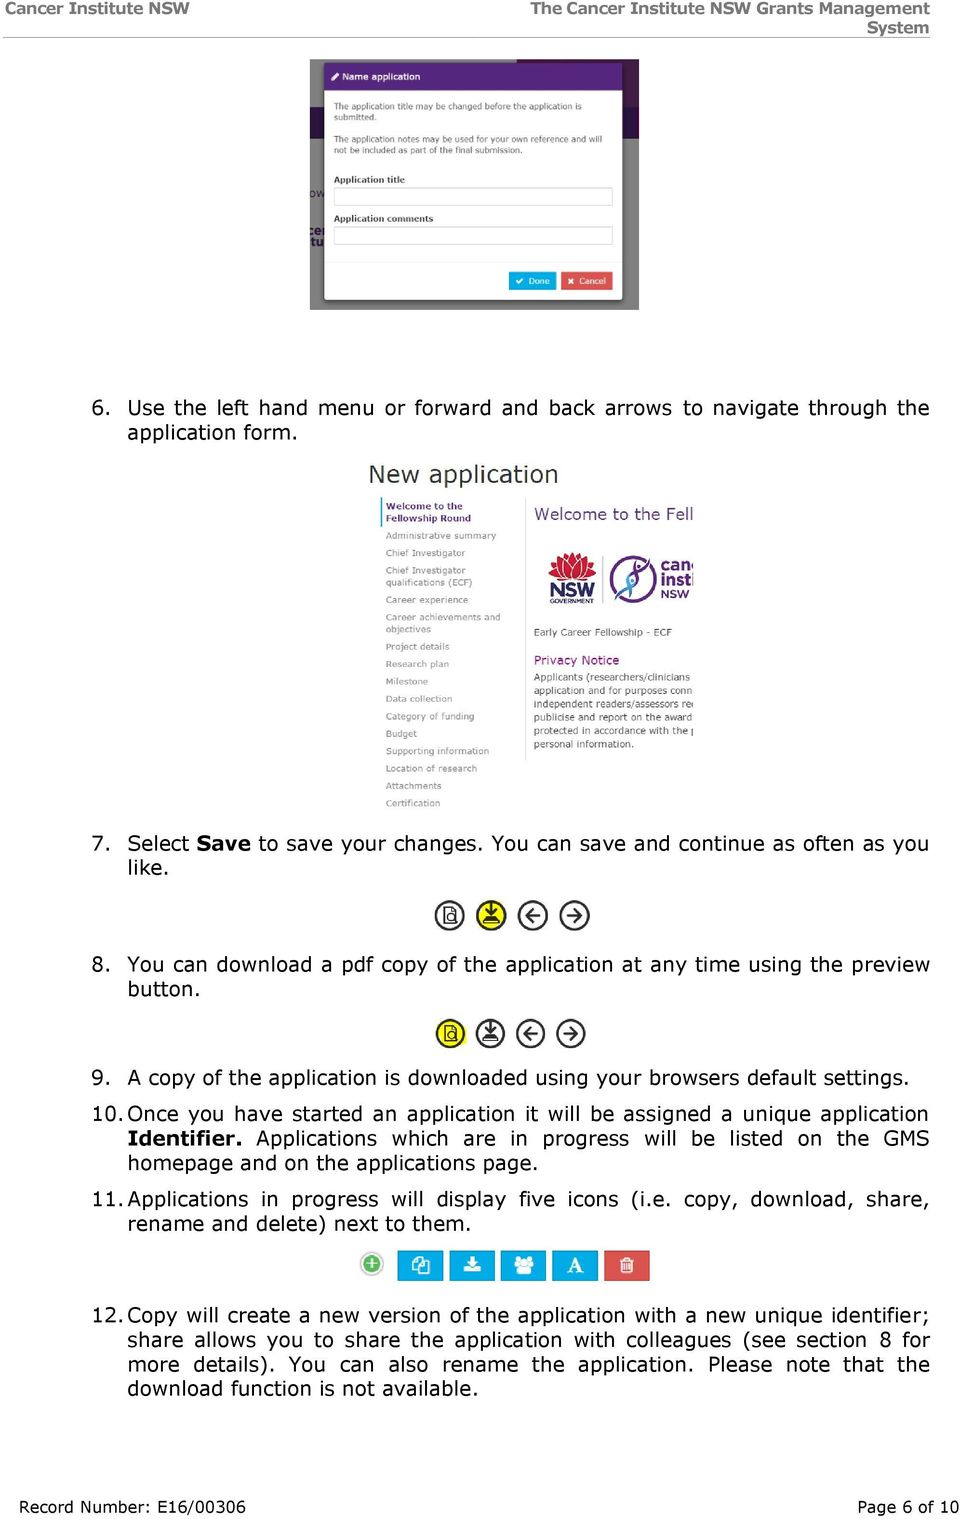 Once you have started an application it will be assigned a unique application Identifier. Applications which are in progress will be listed on the GMS homepage and on the applications page. 11.